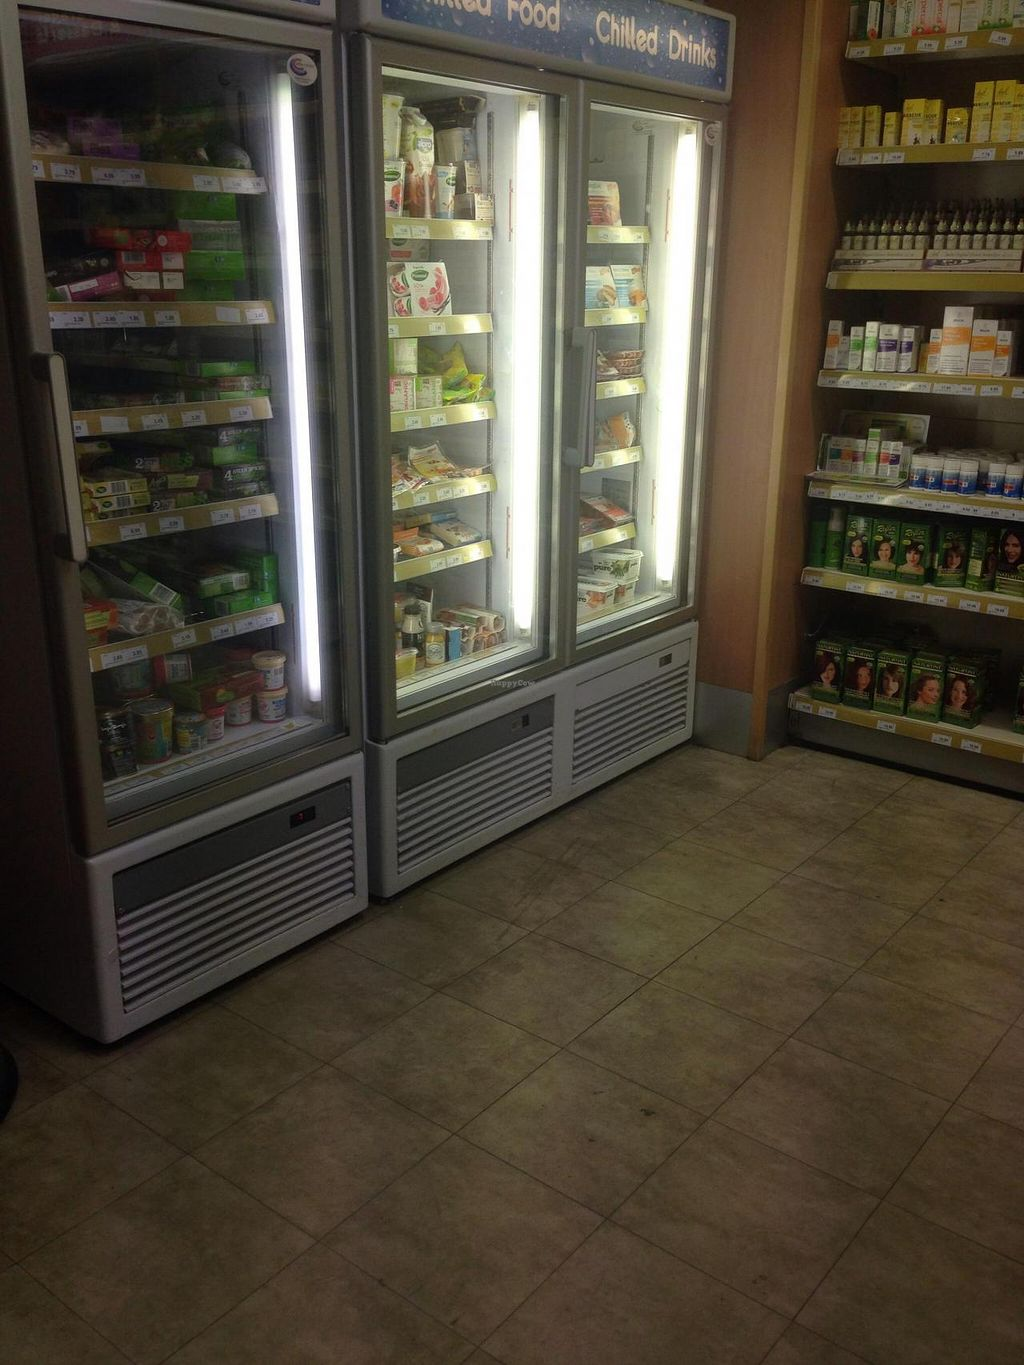 """Photo of Holland and Barrett - Eltham  by <a href=""""/members/profile/Clare"""">Clare</a> <br/>Chilled goods <br/> June 26, 2015  - <a href='/contact/abuse/image/5783/107316'>Report</a>"""